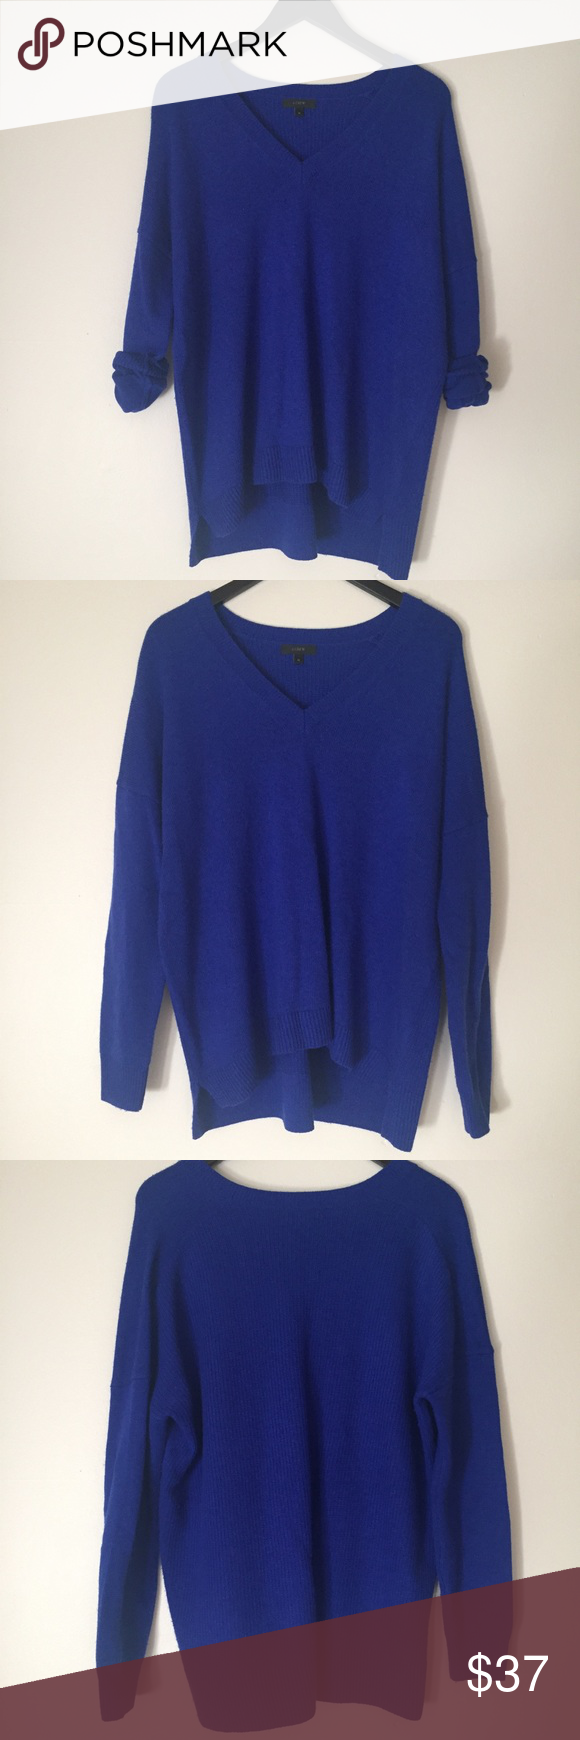 """J. Crew Bright Blue Wool Blend Oversized Sweater J. Crew Bright cobalt blue oversized sweater! Size medium. V-neck and long sleeves. Front 25 1/2"""" long, back 27 1/2"""" long, 24 1/4"""" pit to pit, sleeves 16 3/4"""" long, v-neck 7"""" deep. Back is Ribbed texture. 40% wool, 35% nylon, 25% viscose. Good condition- minor wear/pilling. Does have minor fuzz from Wool Blend. NO TRADES. J. Crew Sweaters"""